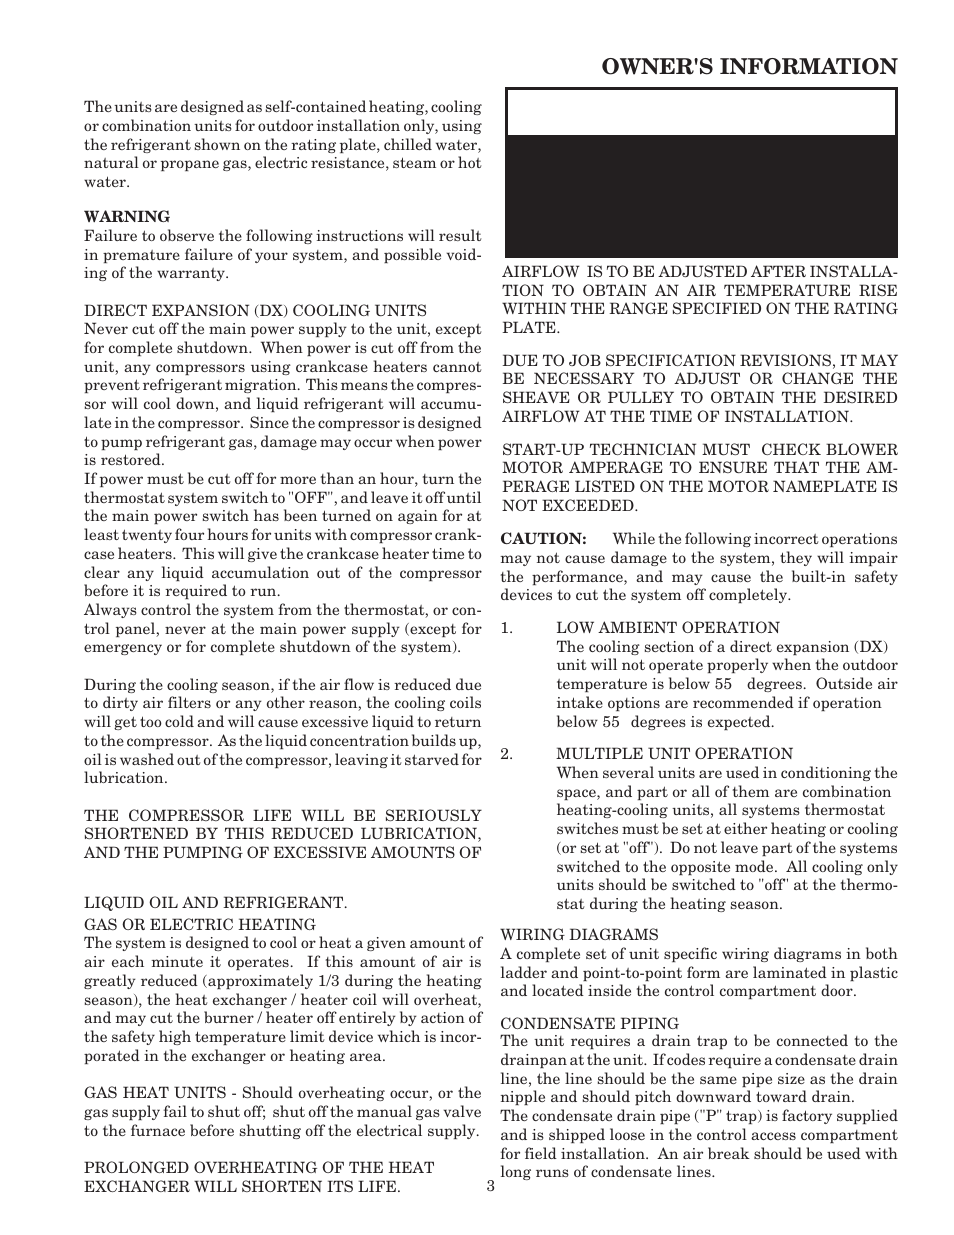 aaon rk 60 page3 warning, owner's information aaon rk 60 user manual page 3 16